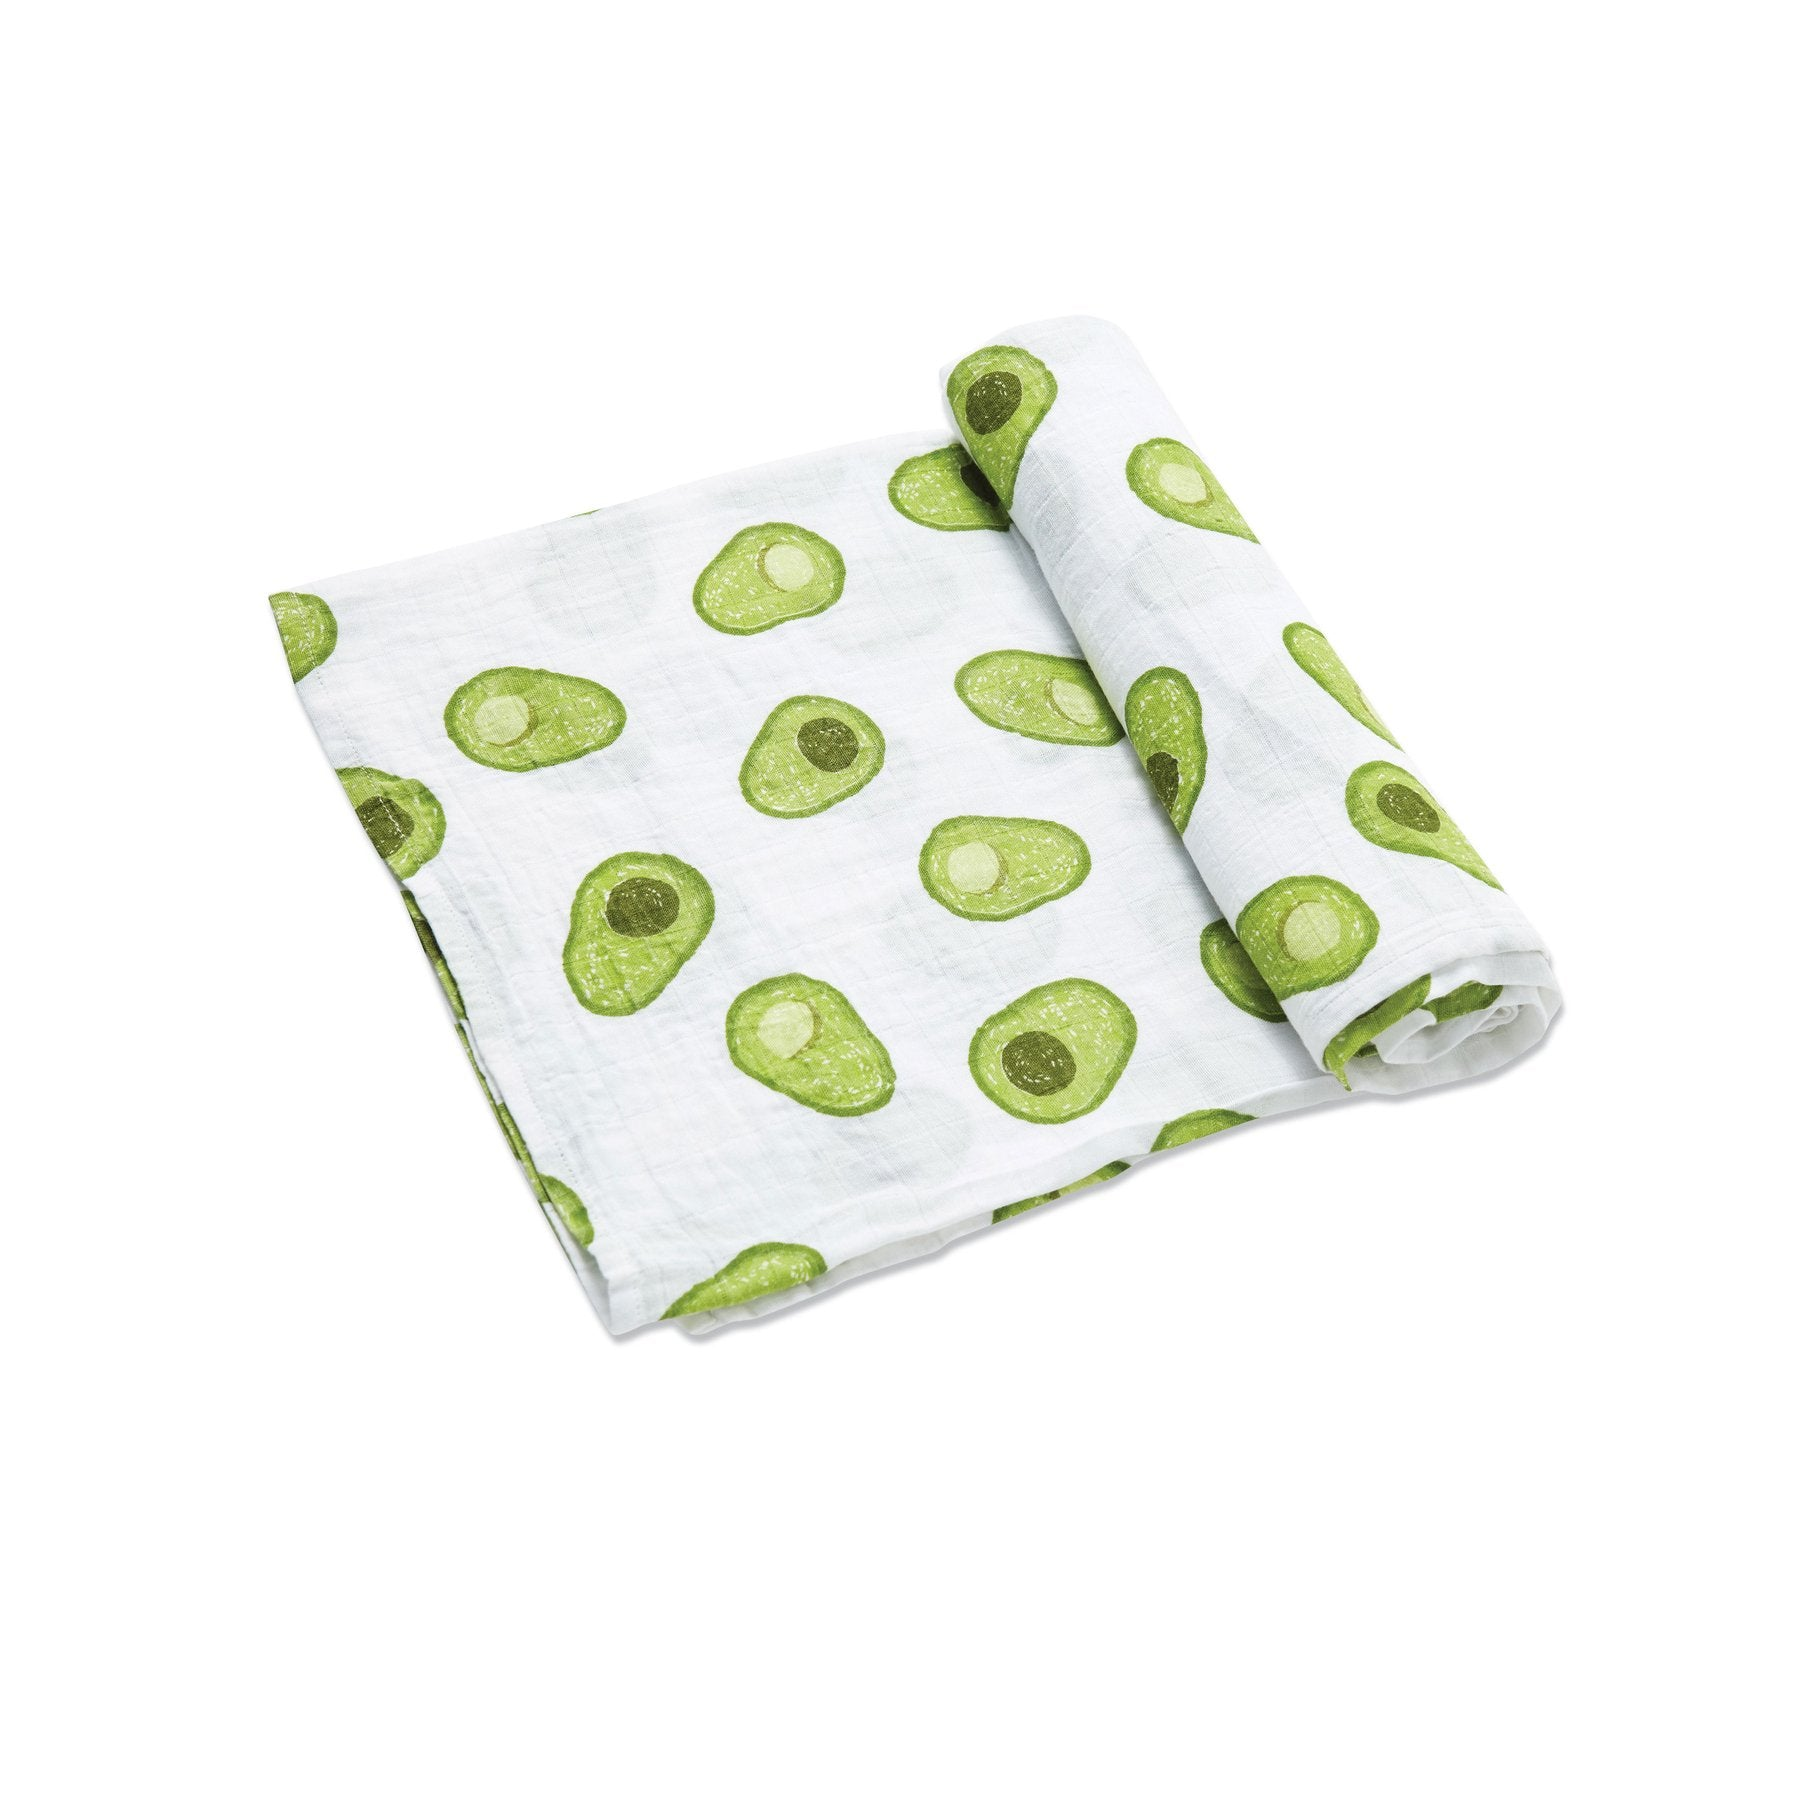 Angel Dear Muslin Swaddle Blanket. White blanket with green avocados.